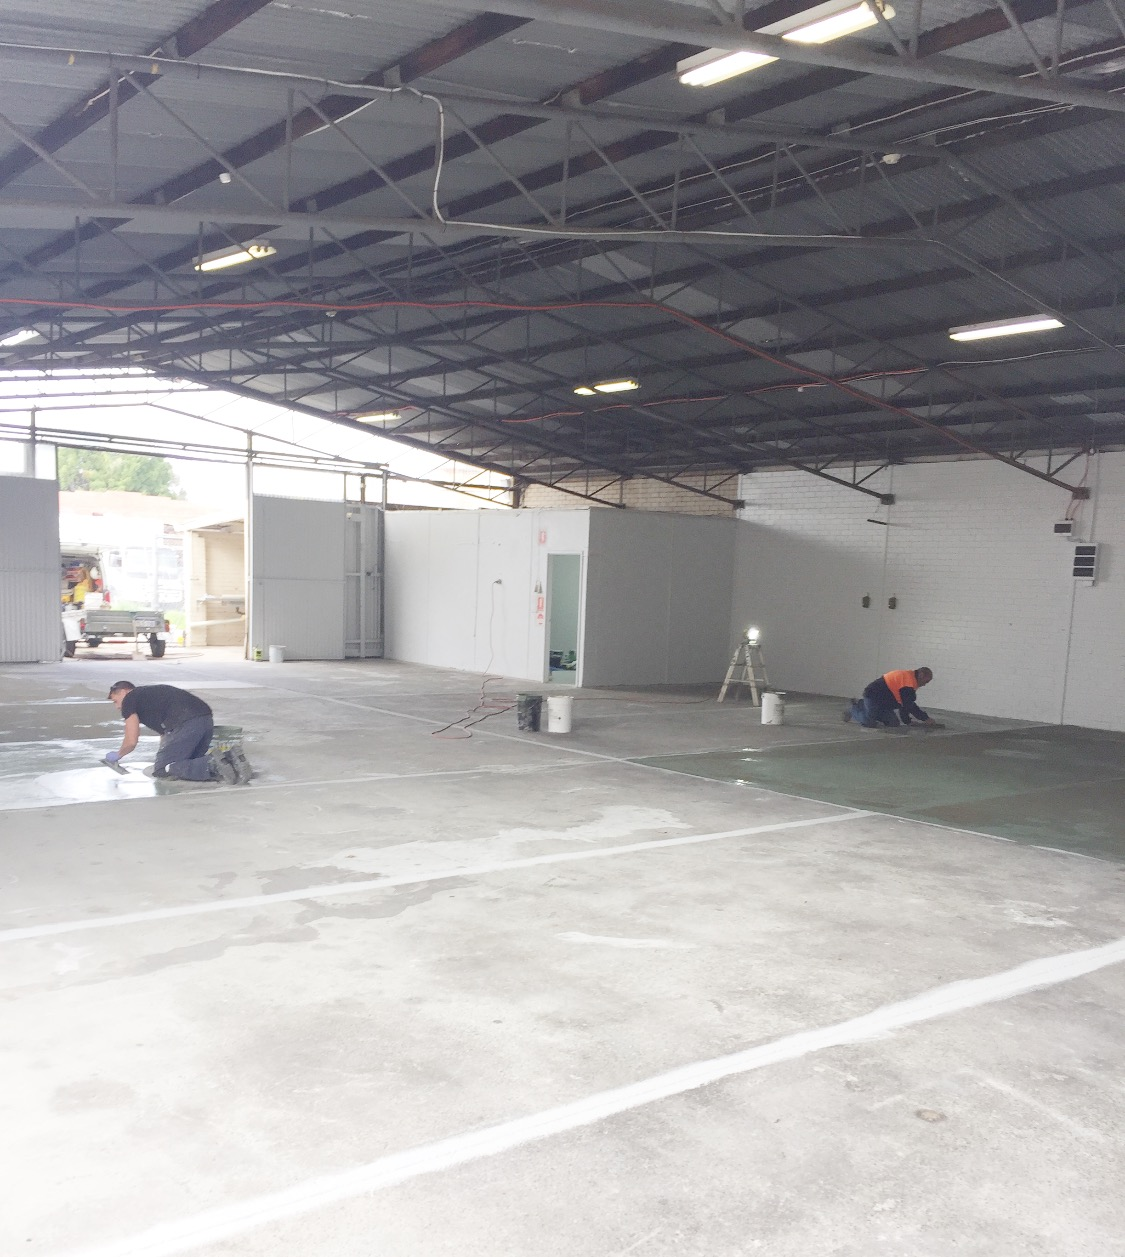 Conspar floor restoration works commence at this commercial warehouse in Bayswater.